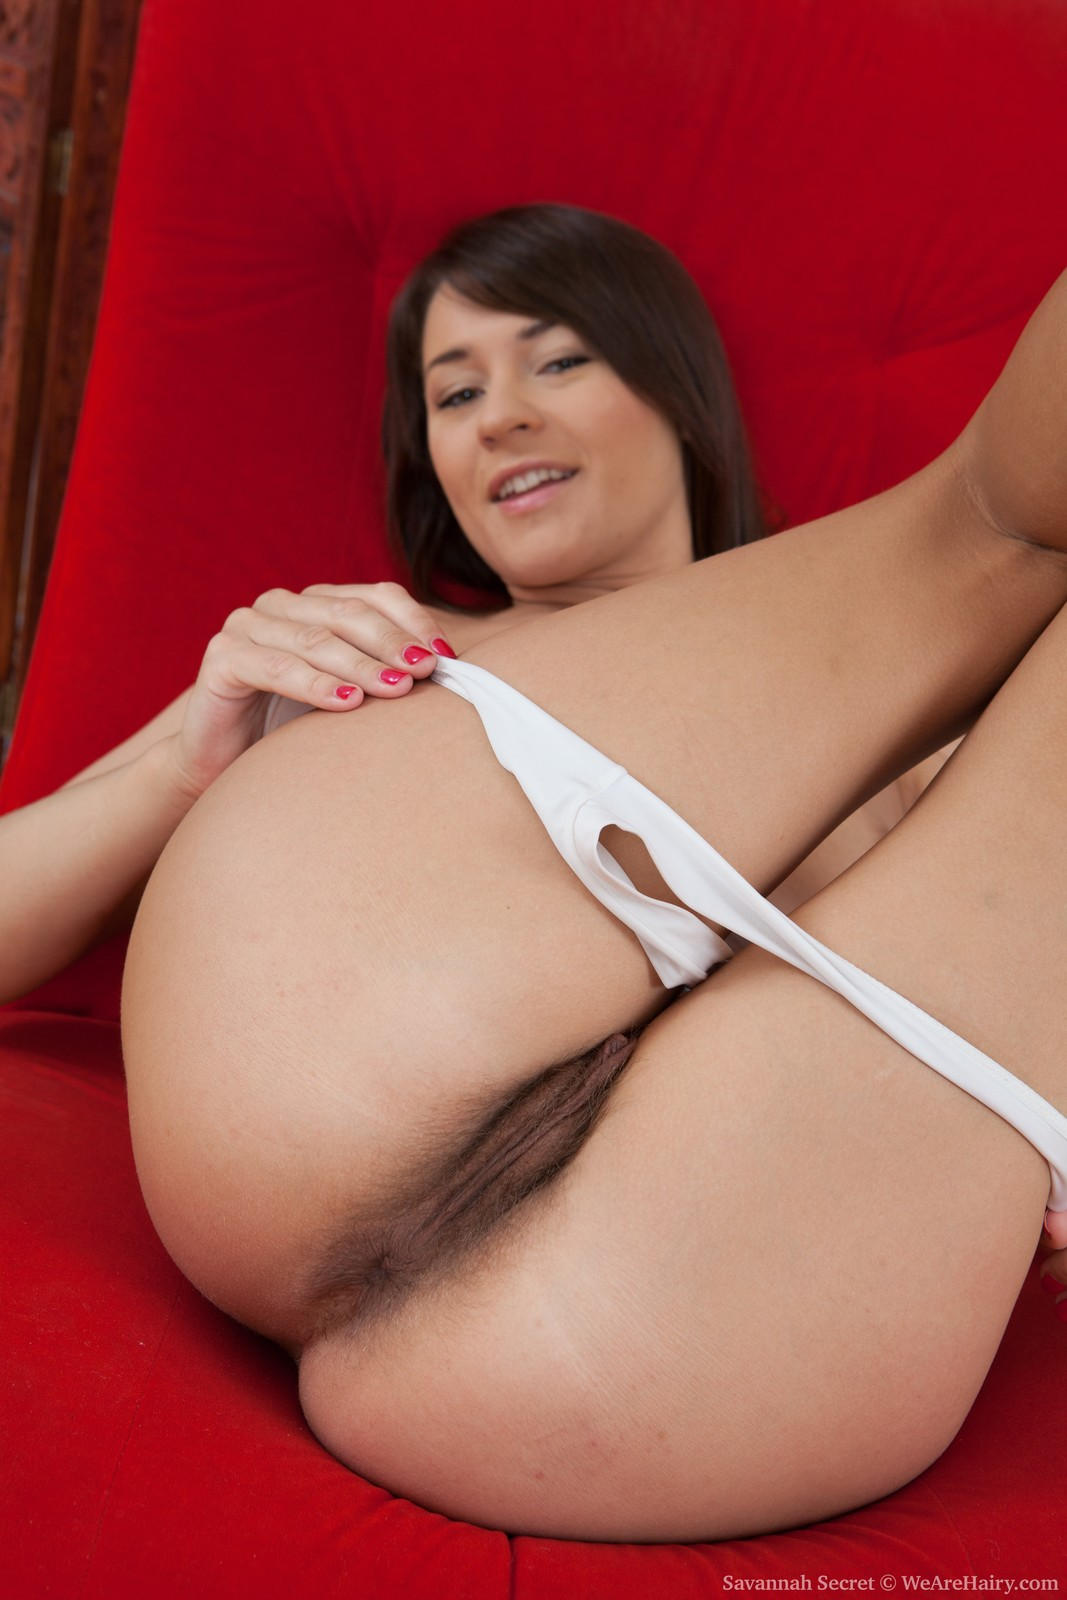 Seems secret hairy perfect savannah her pussy fiingers can not participate